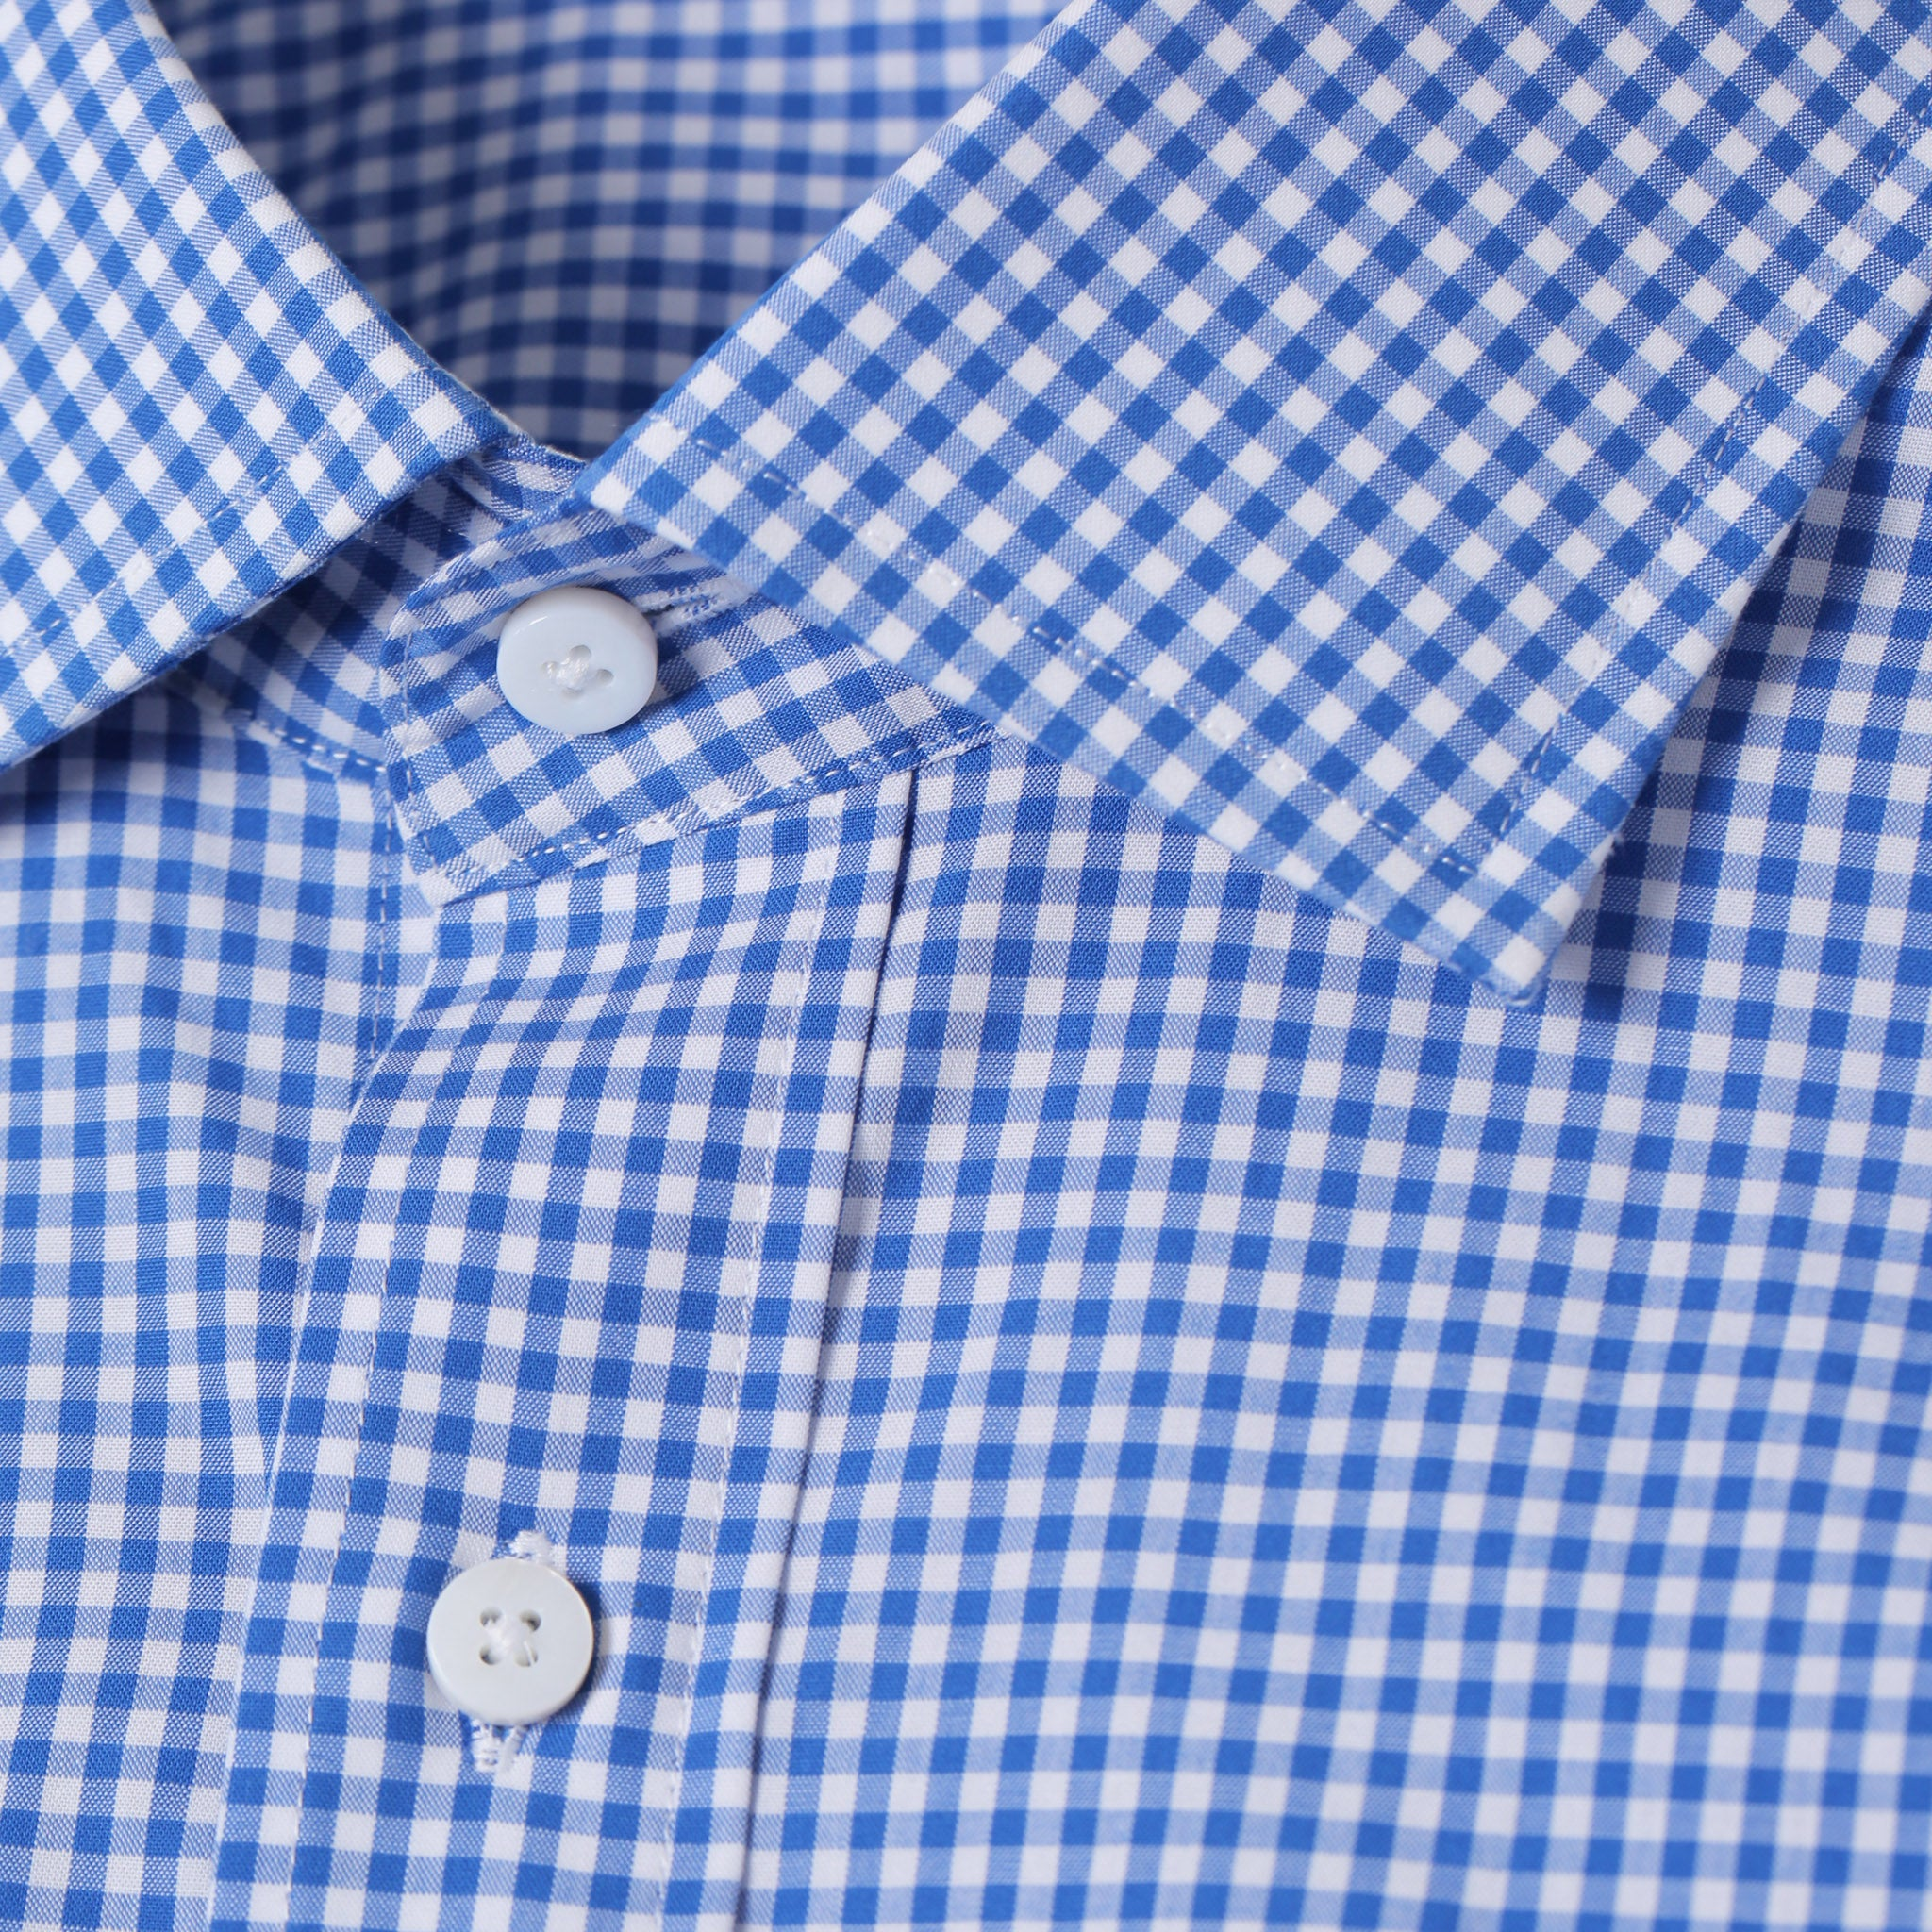 Mason Everyday Shirt in Blue Gingham